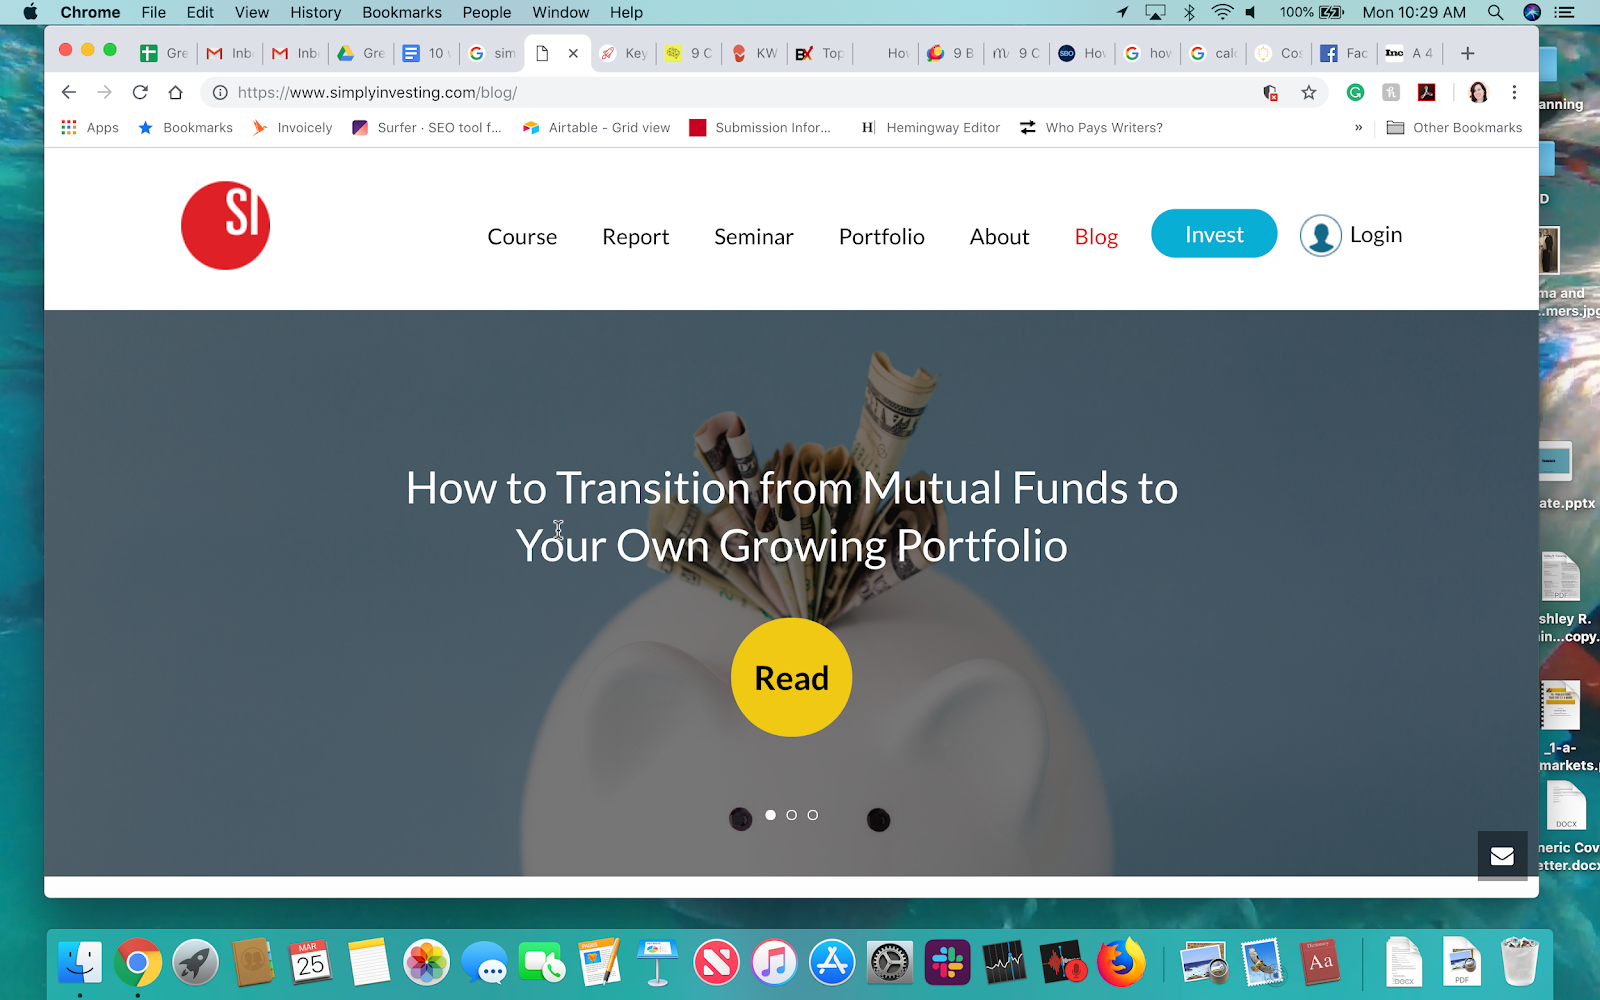 Simply Investing Blog Name